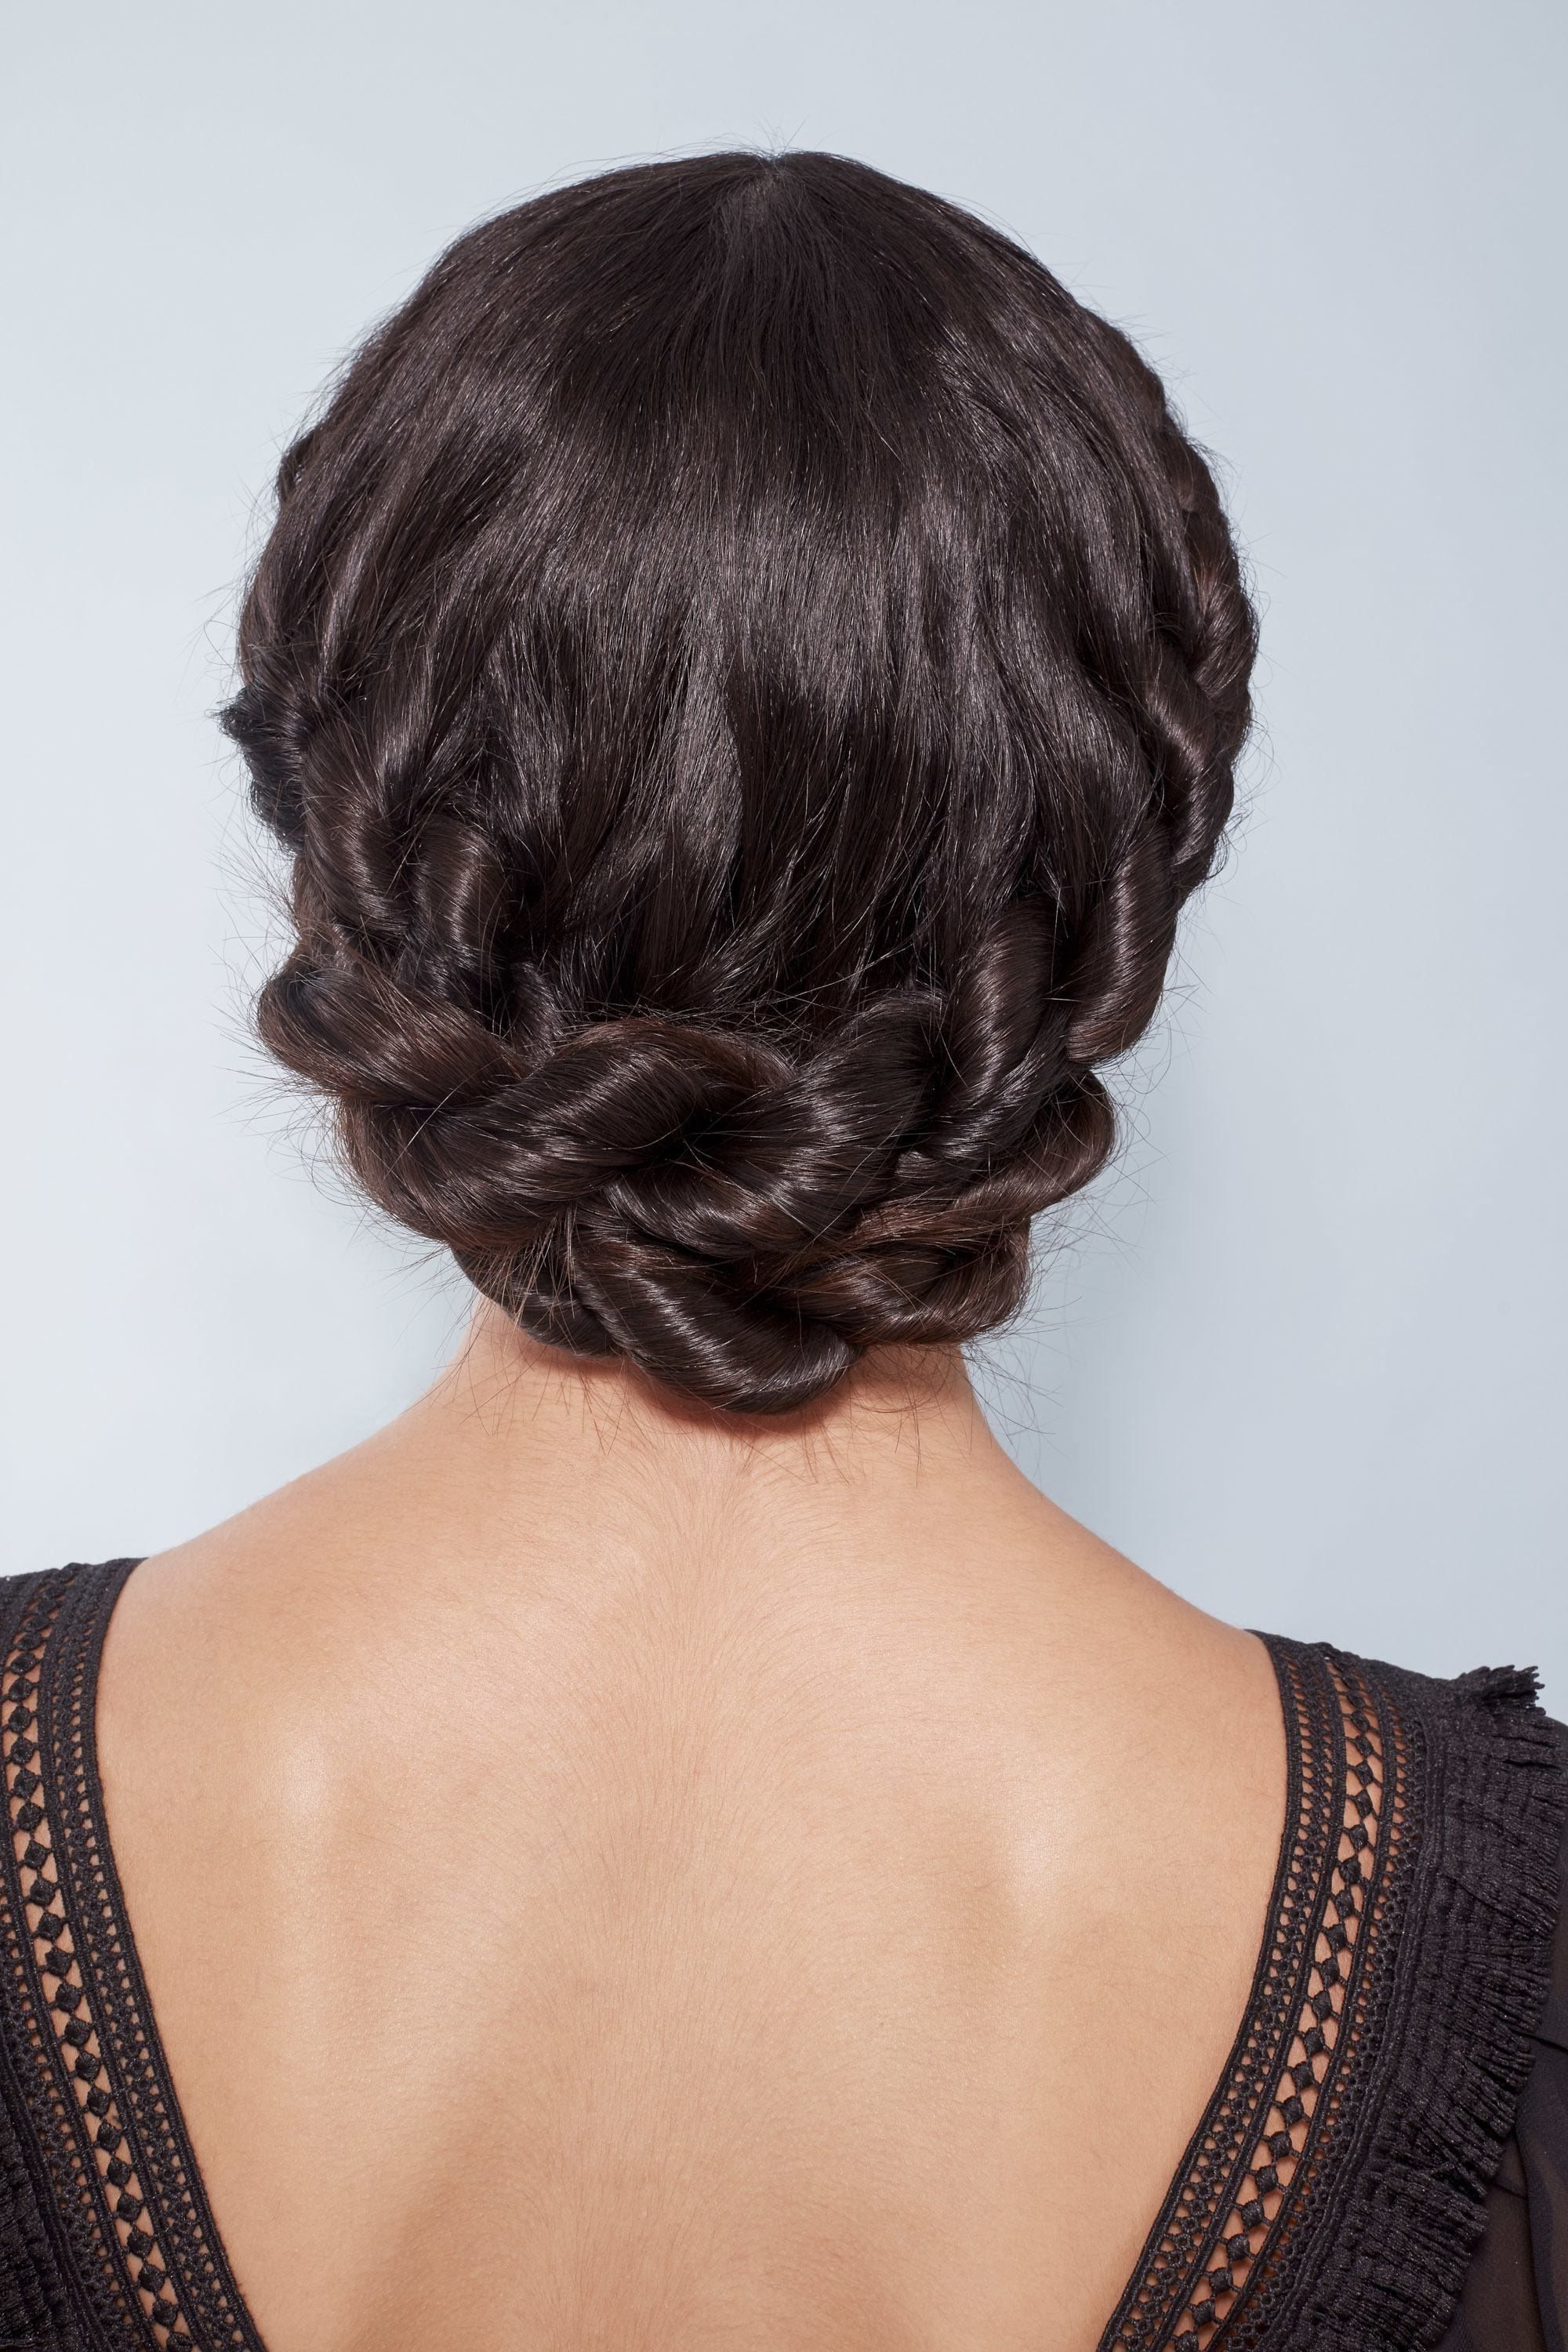 Fashionable Pinned Brunette Ribbons Bridal Hairstyles With 25 Wedding Guest Hairstyles That'll Make You The Chicest Attendee (View 8 of 20)